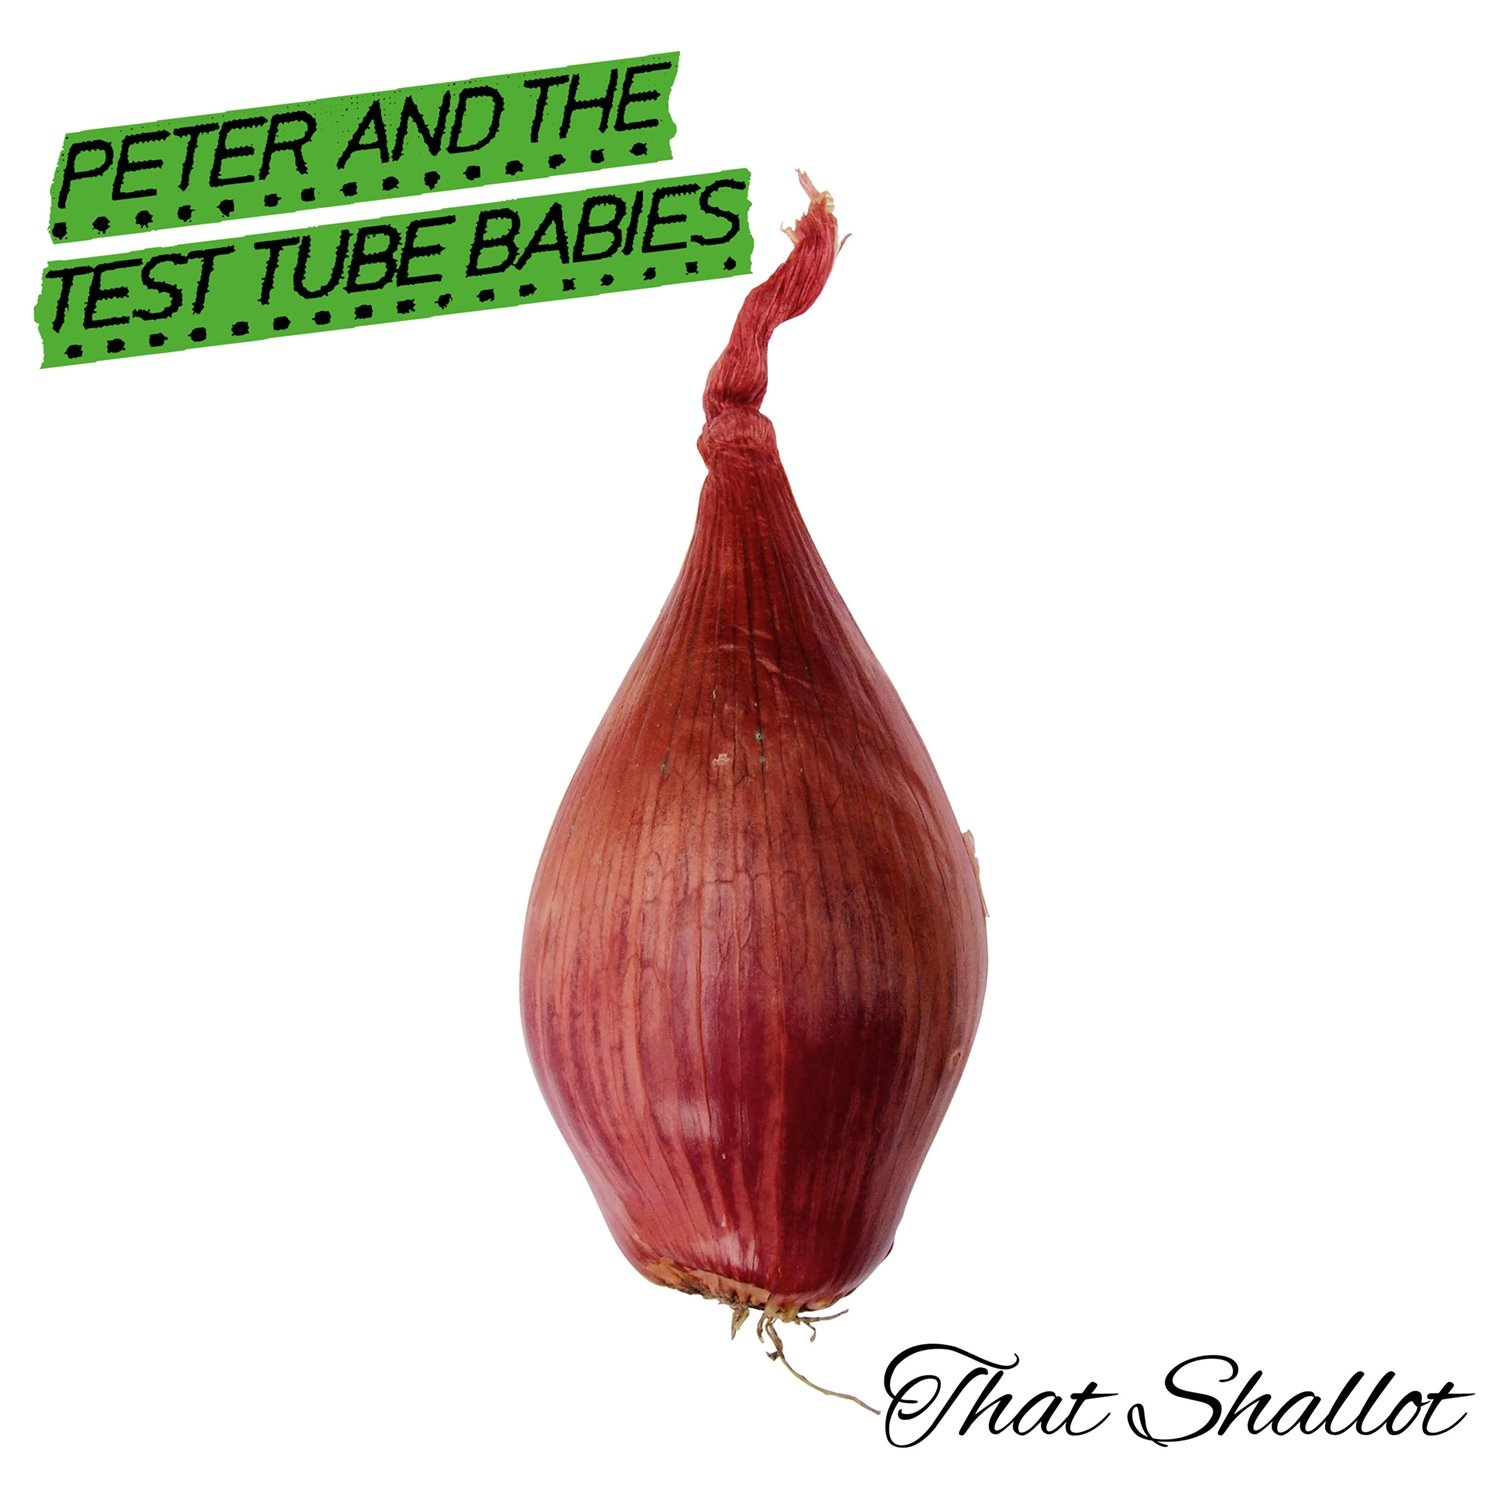 Peter And The Test Tube Babies - That Shallot - Artwork